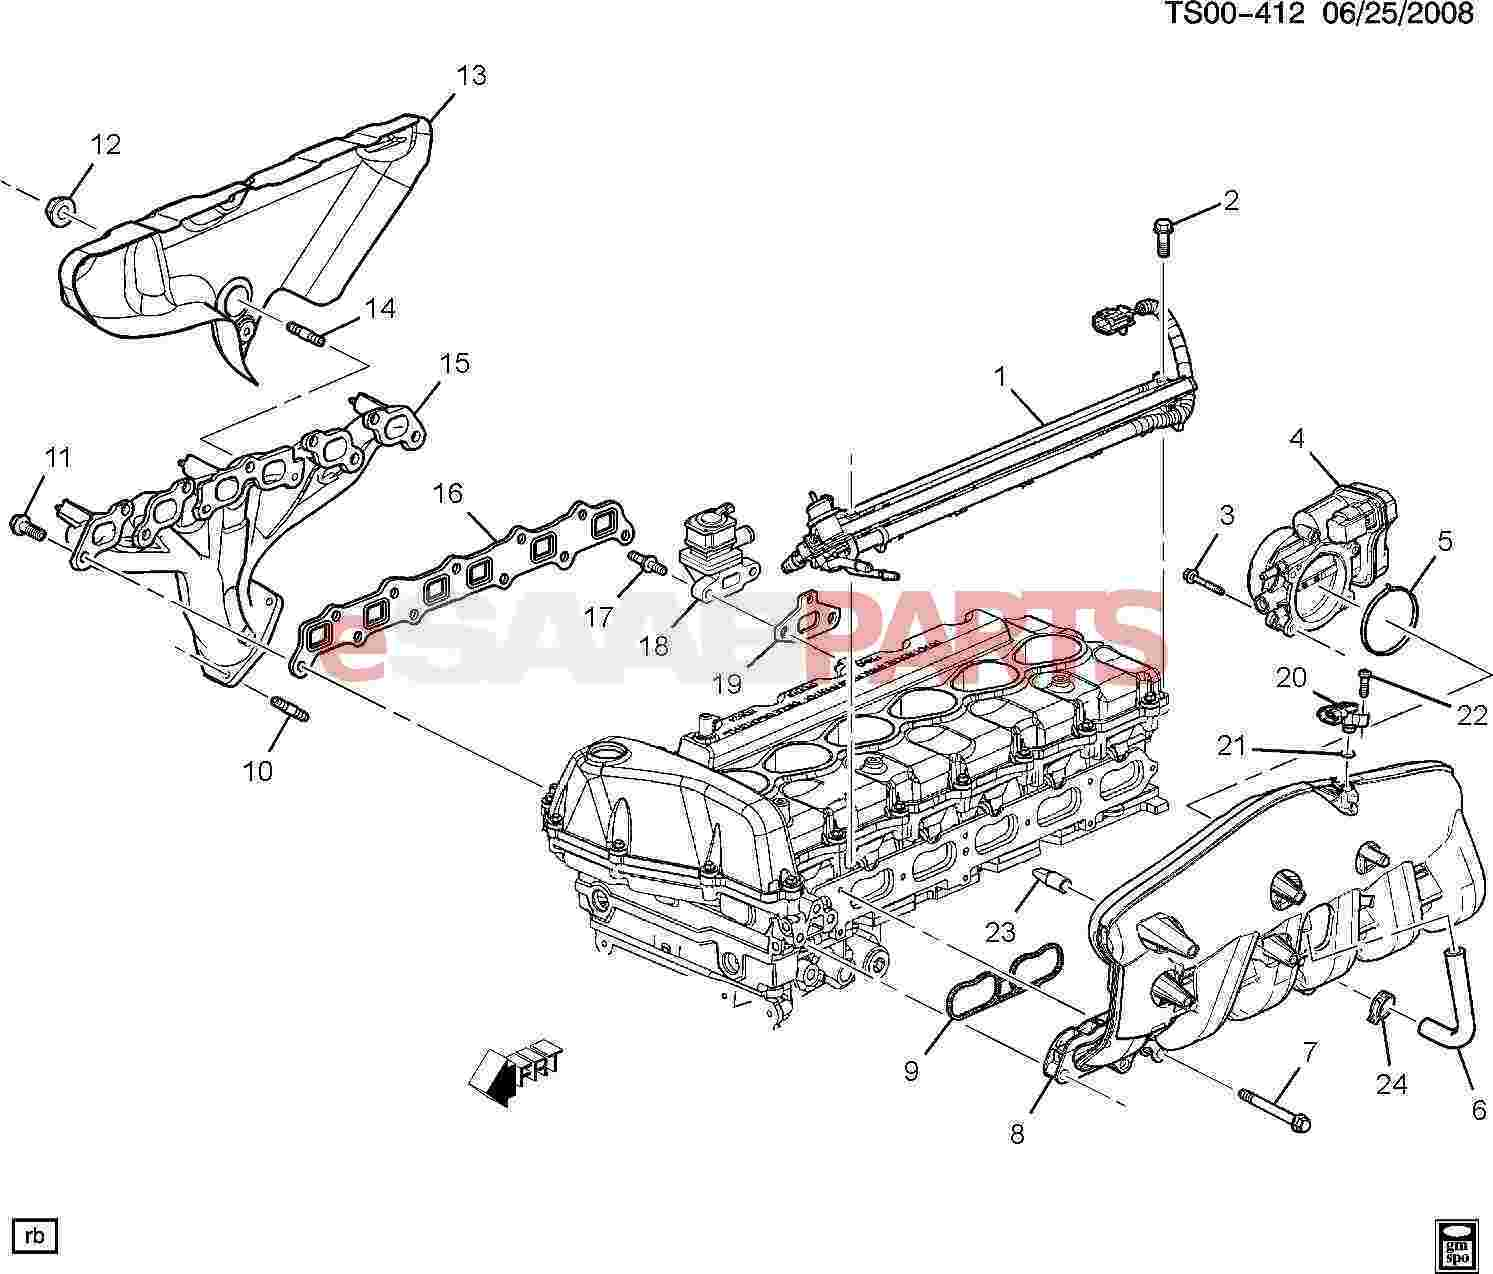 11588717  saab bolt  throt actuator cont mdl